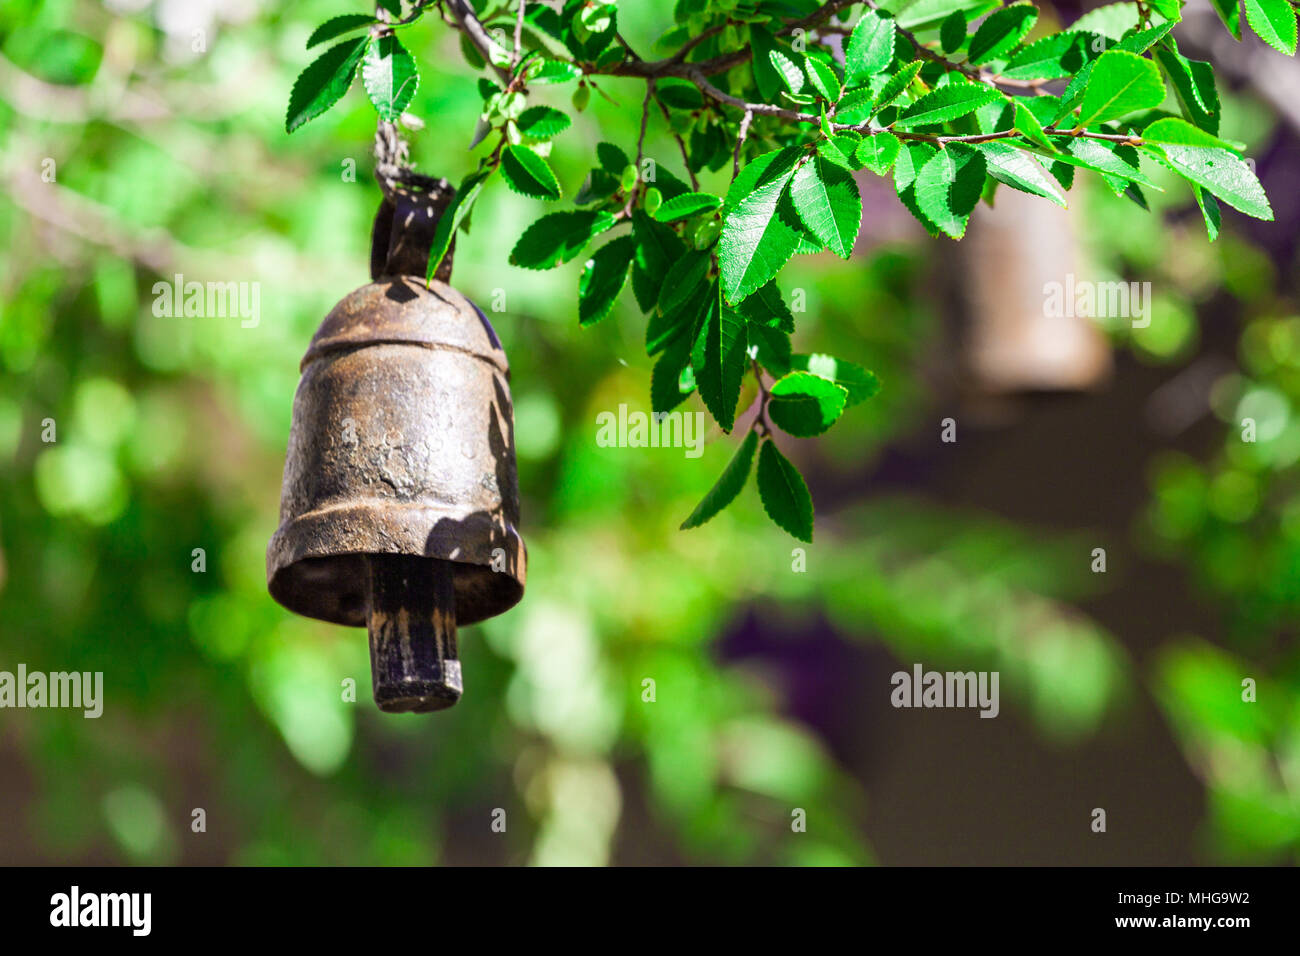 Ritual bell hanging from tree branch on blurred background - Stock Image